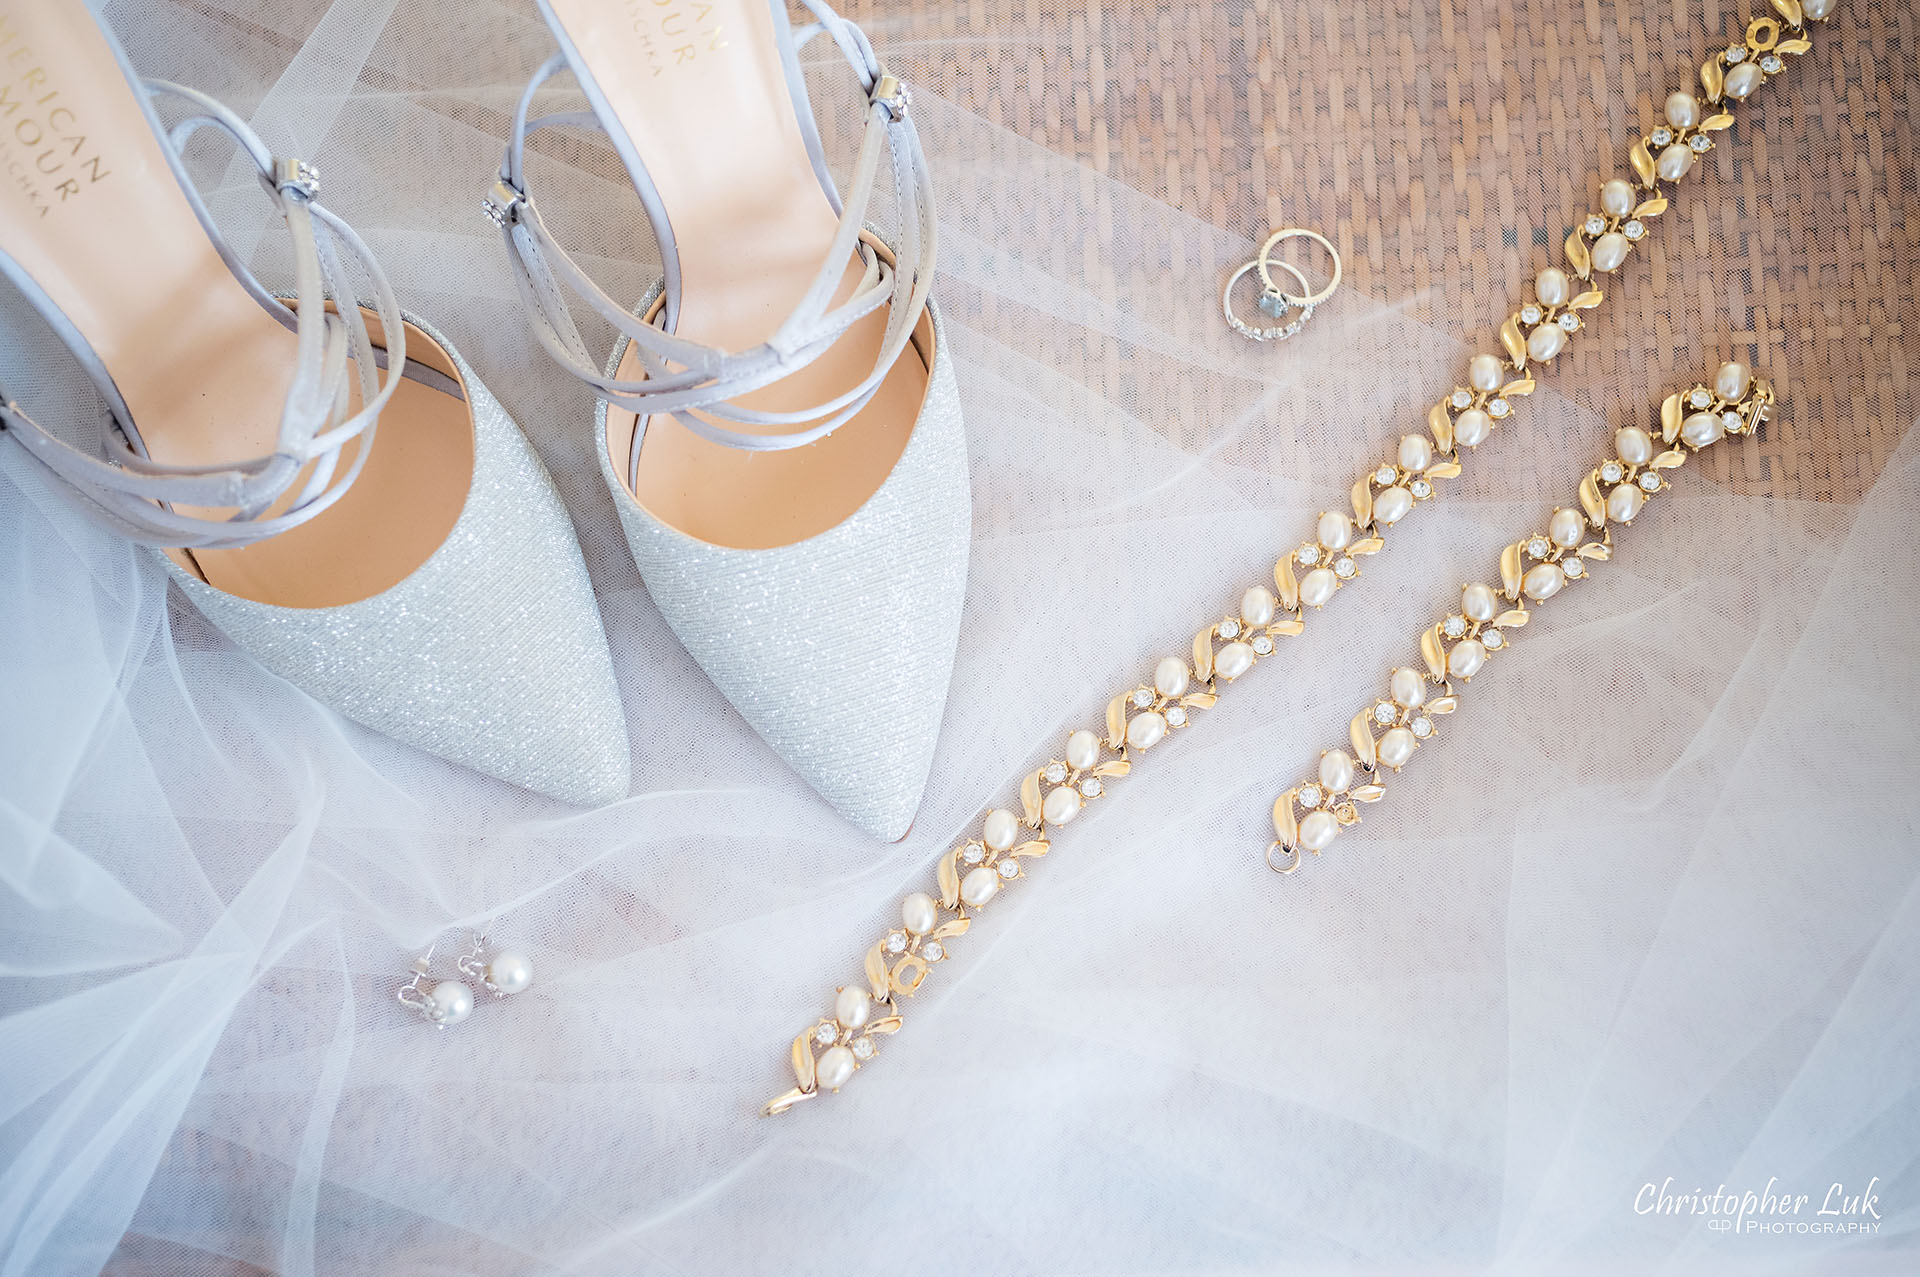 Christopher Luk Toronto Wedding Photographer Bridle Trail Baptist Church Unionville Main Street Crystal Fountain Event Venue Bride Bridal Boudoir Shoes Jewellery Jewelry Necklace Bracelet Pearls Crystal Gold Diamond Rings Earrings Veil Detail